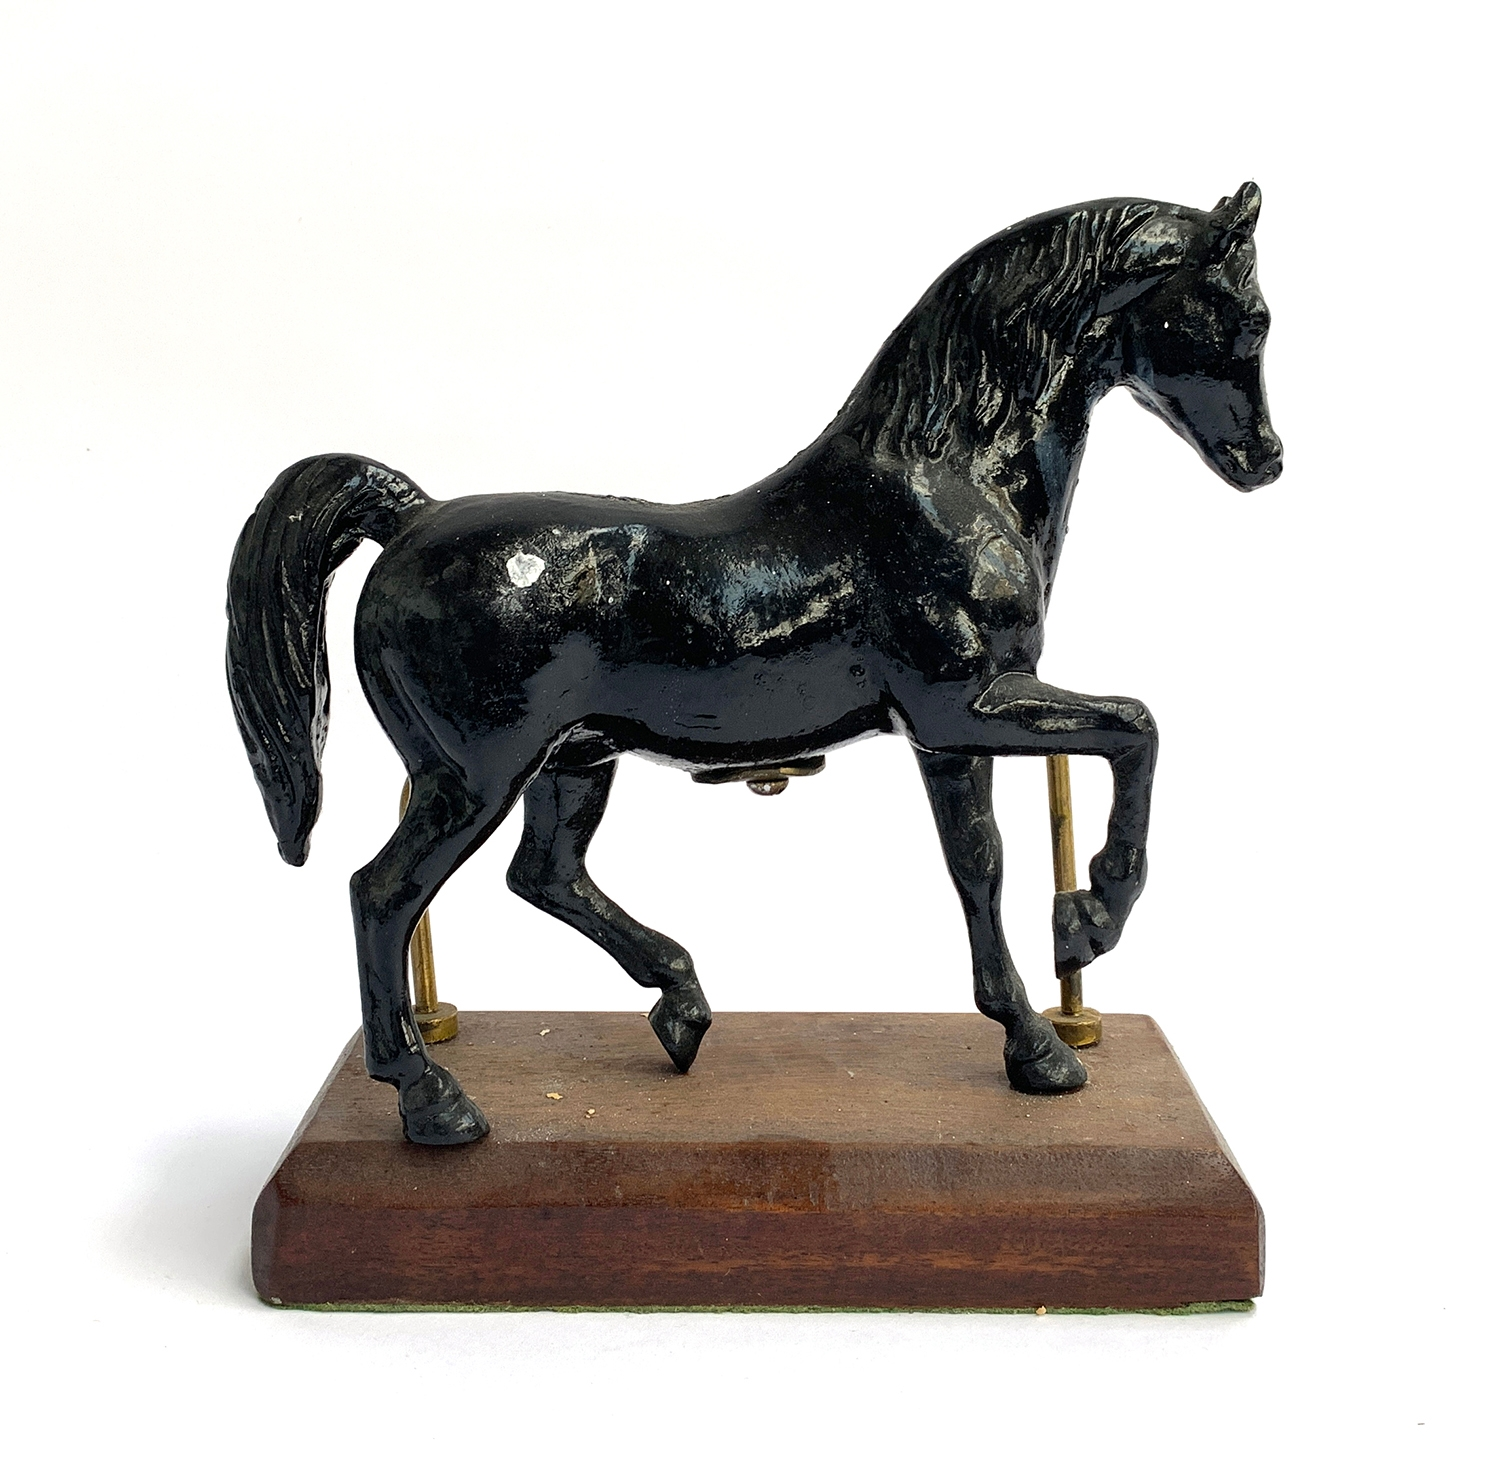 A painted figure of a horse, mounted on a wooden plinth, 26cm high